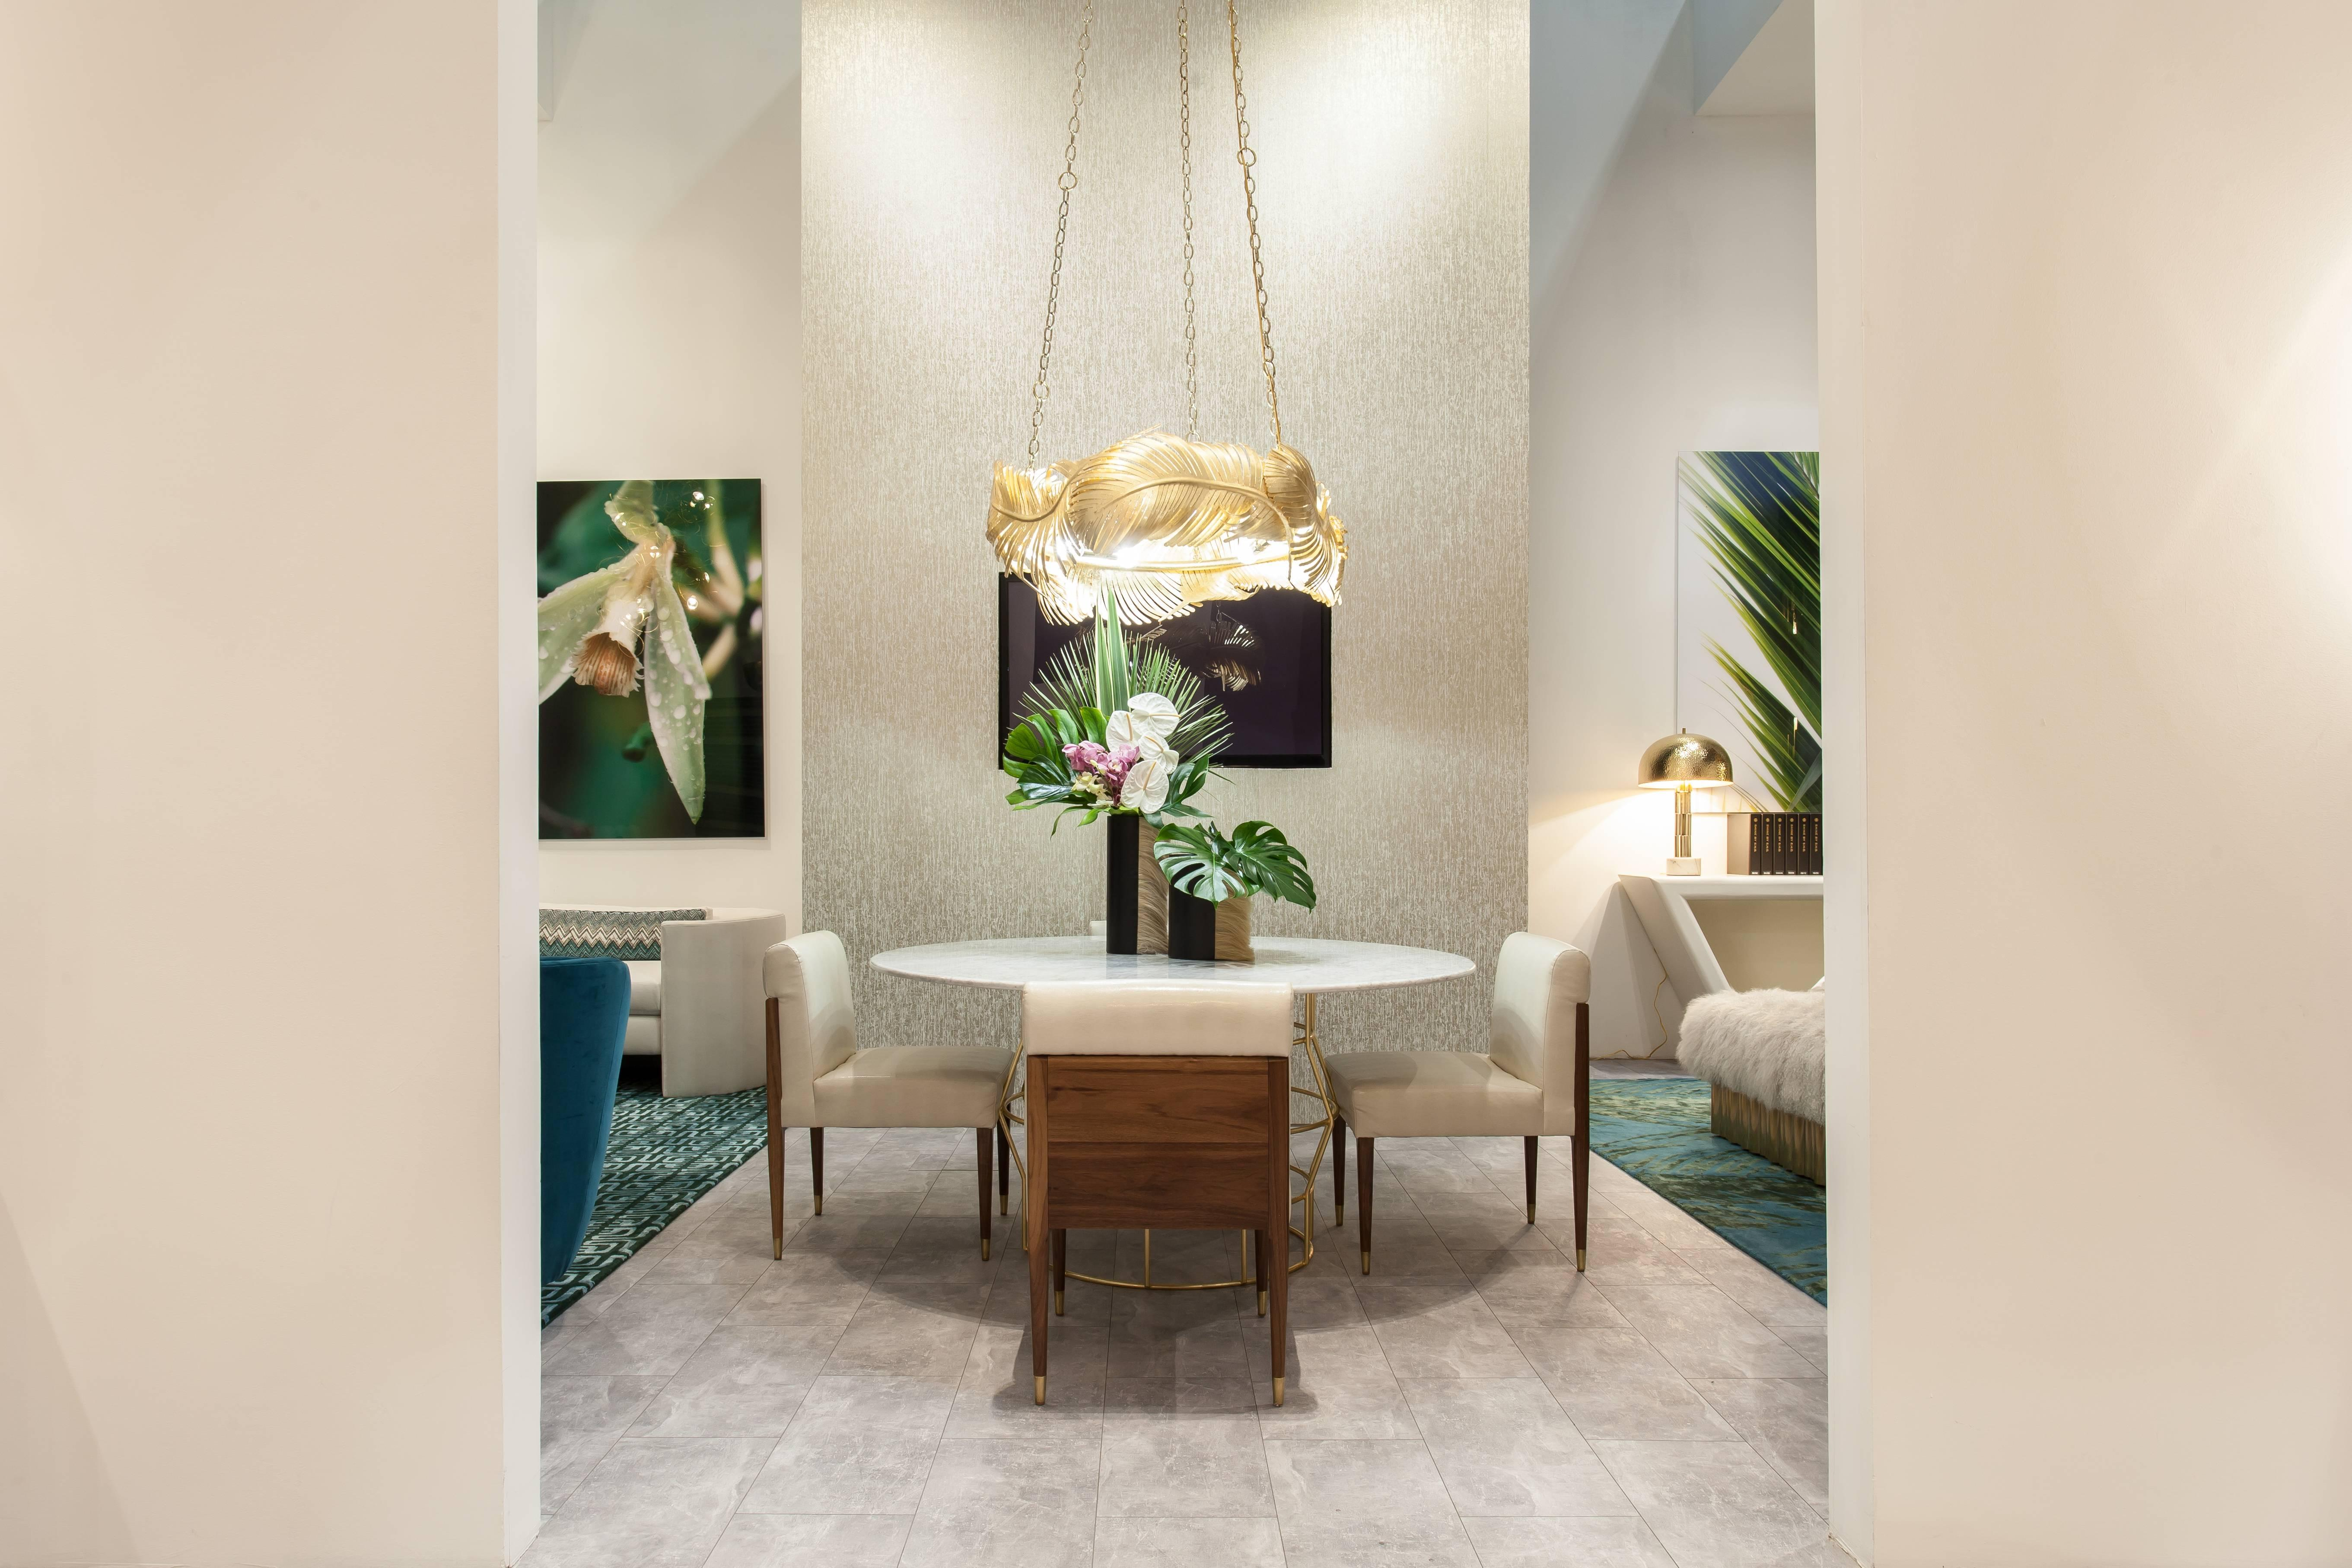 The Halston Dining Table Is A Modern Dining Table Made Of Gold Leaf Over  Iron With